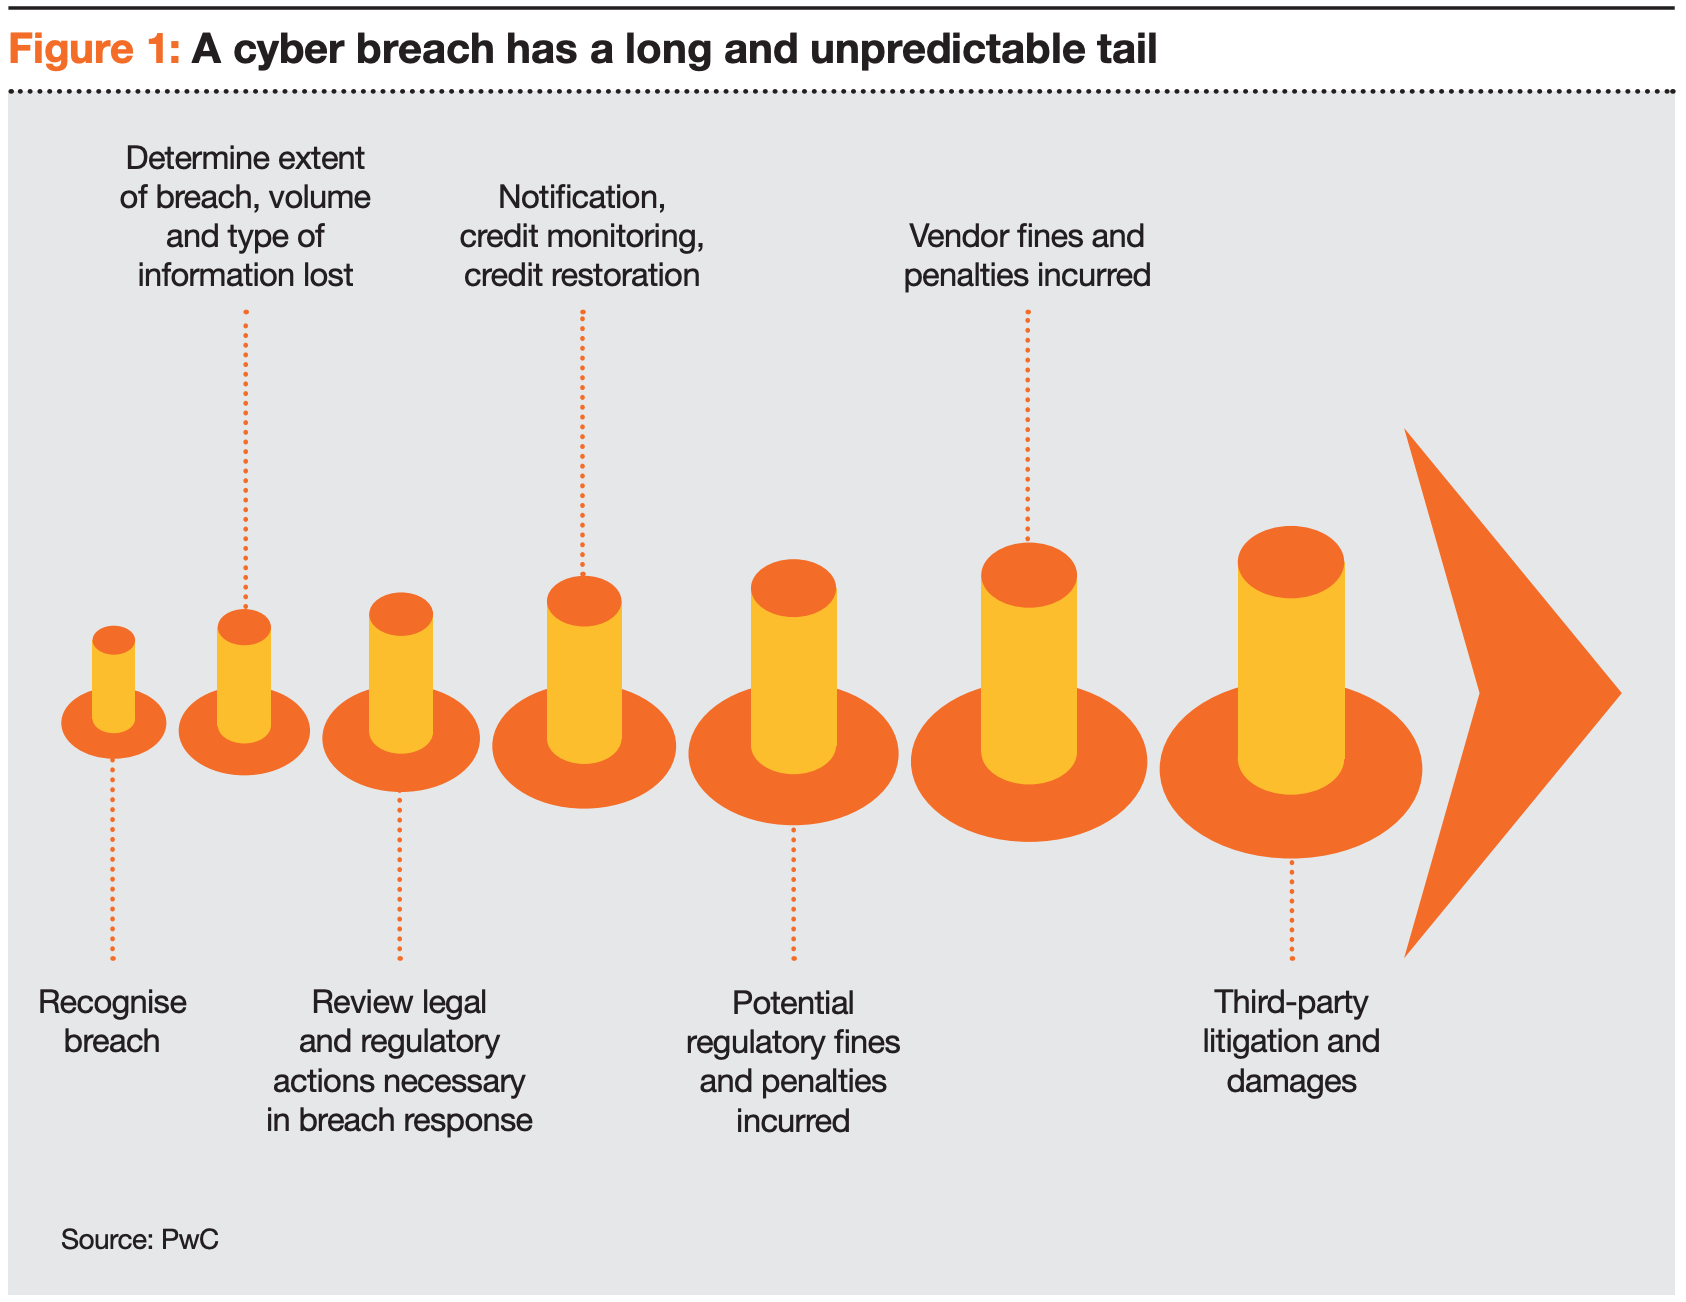 Cyber incident long tail